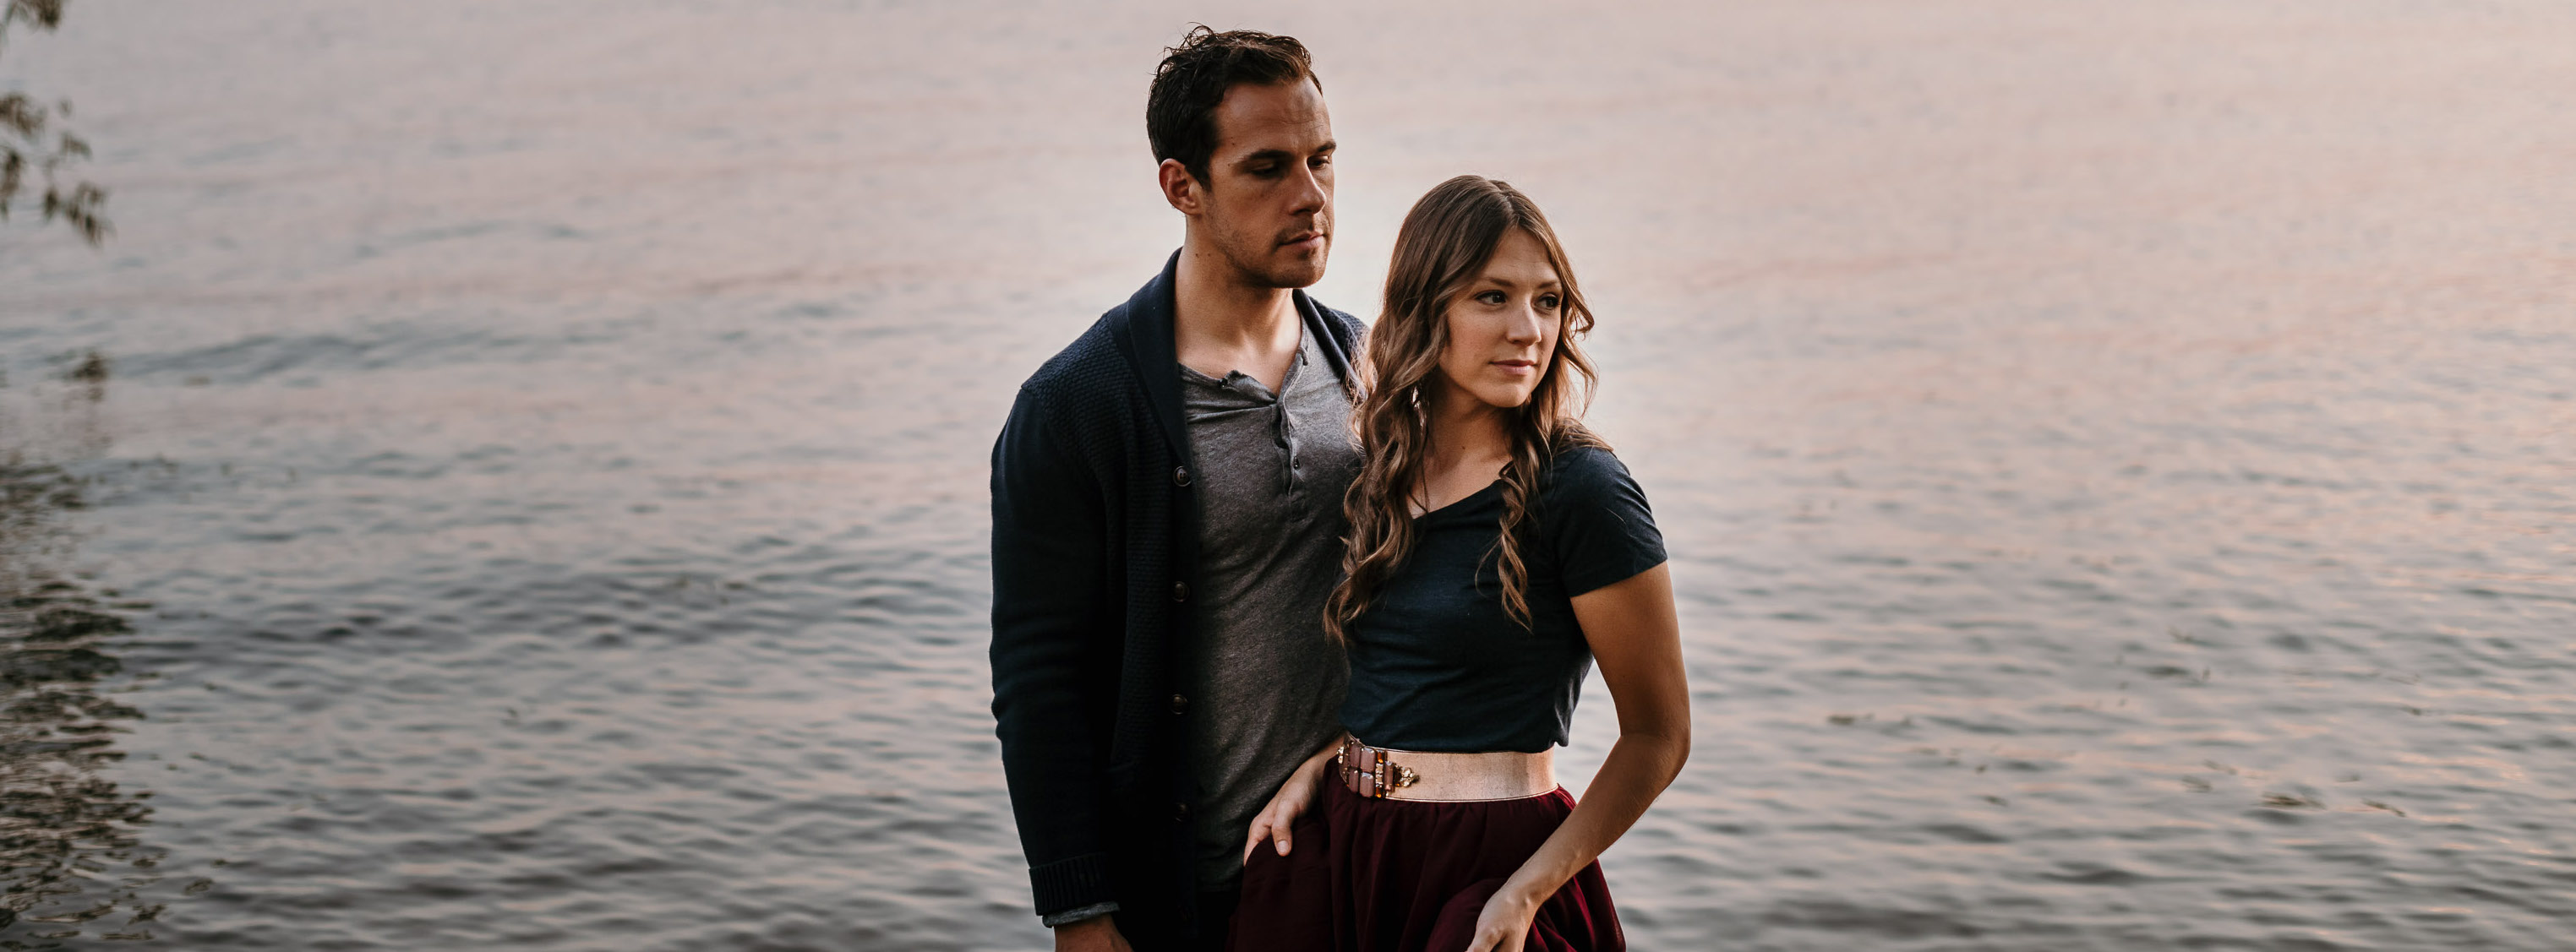 JENNY & TYLER EXPLORE JUSTICE, LOVE AND BEAUTY WITH 'THERE WILL BE A SONG' OCTOBER 12